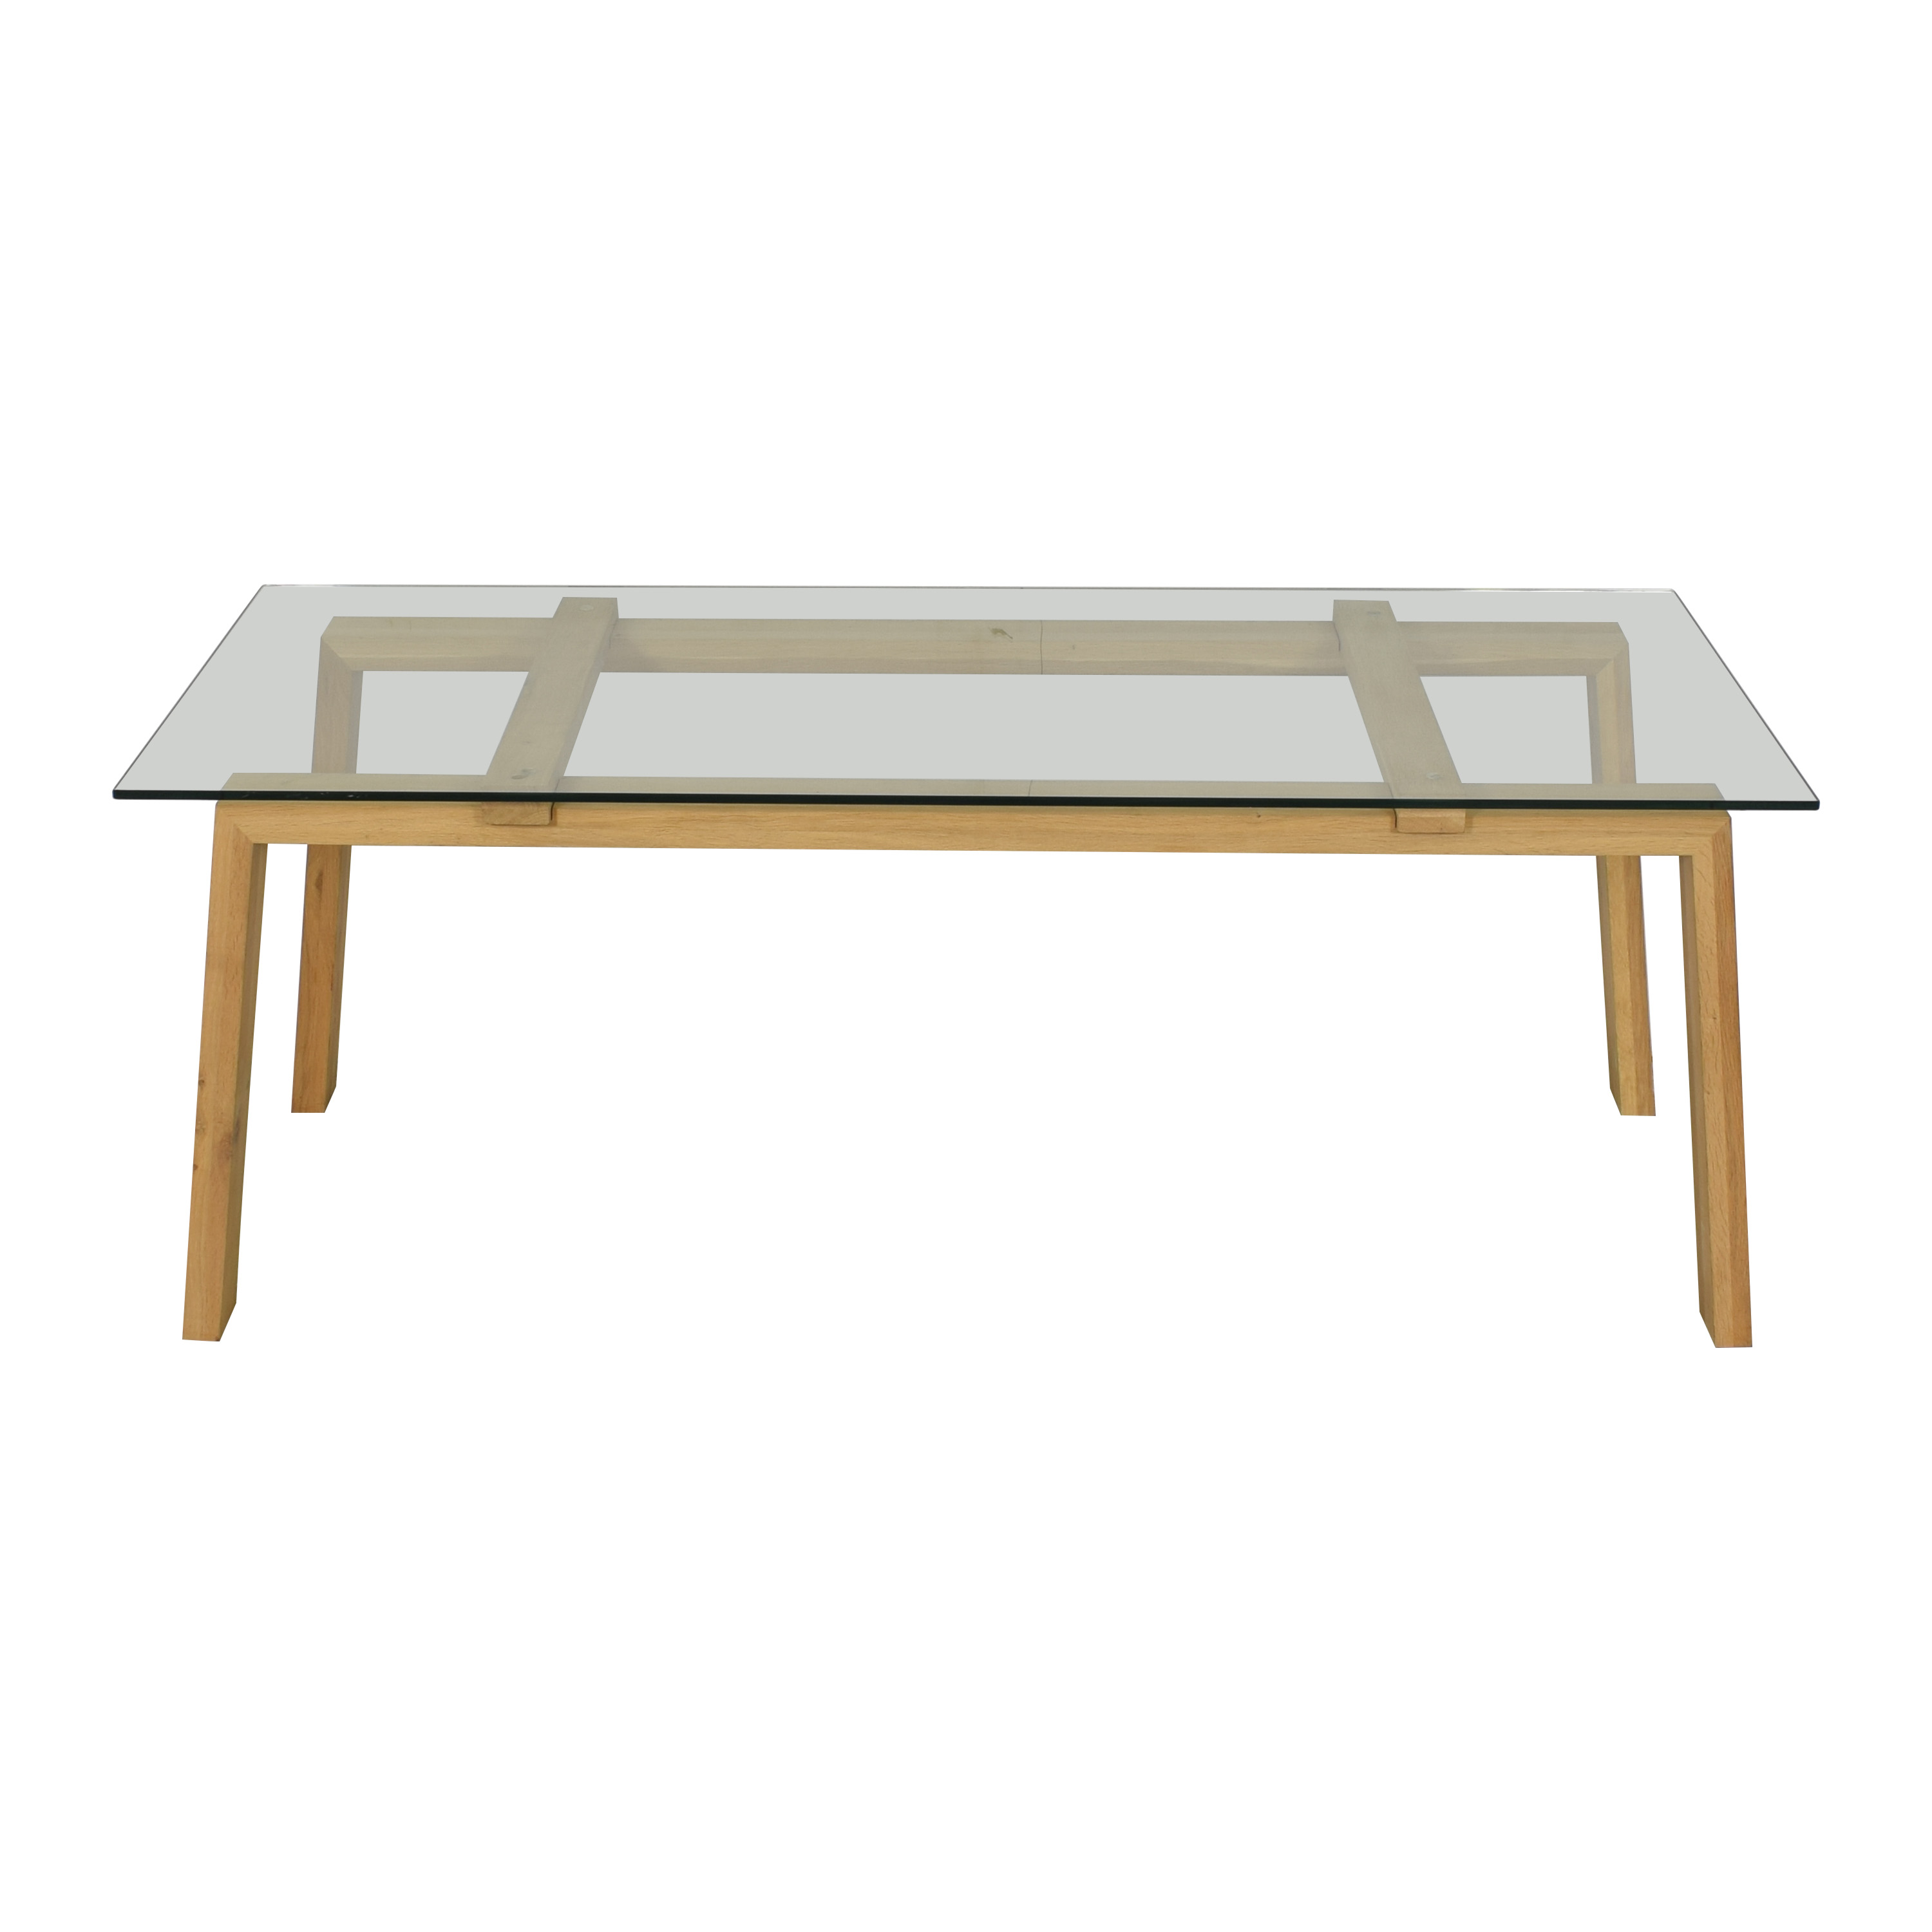 shop ABC Carpet & Home ABC Carpet & Home Ethnicraft Dining Table with Wood Base online